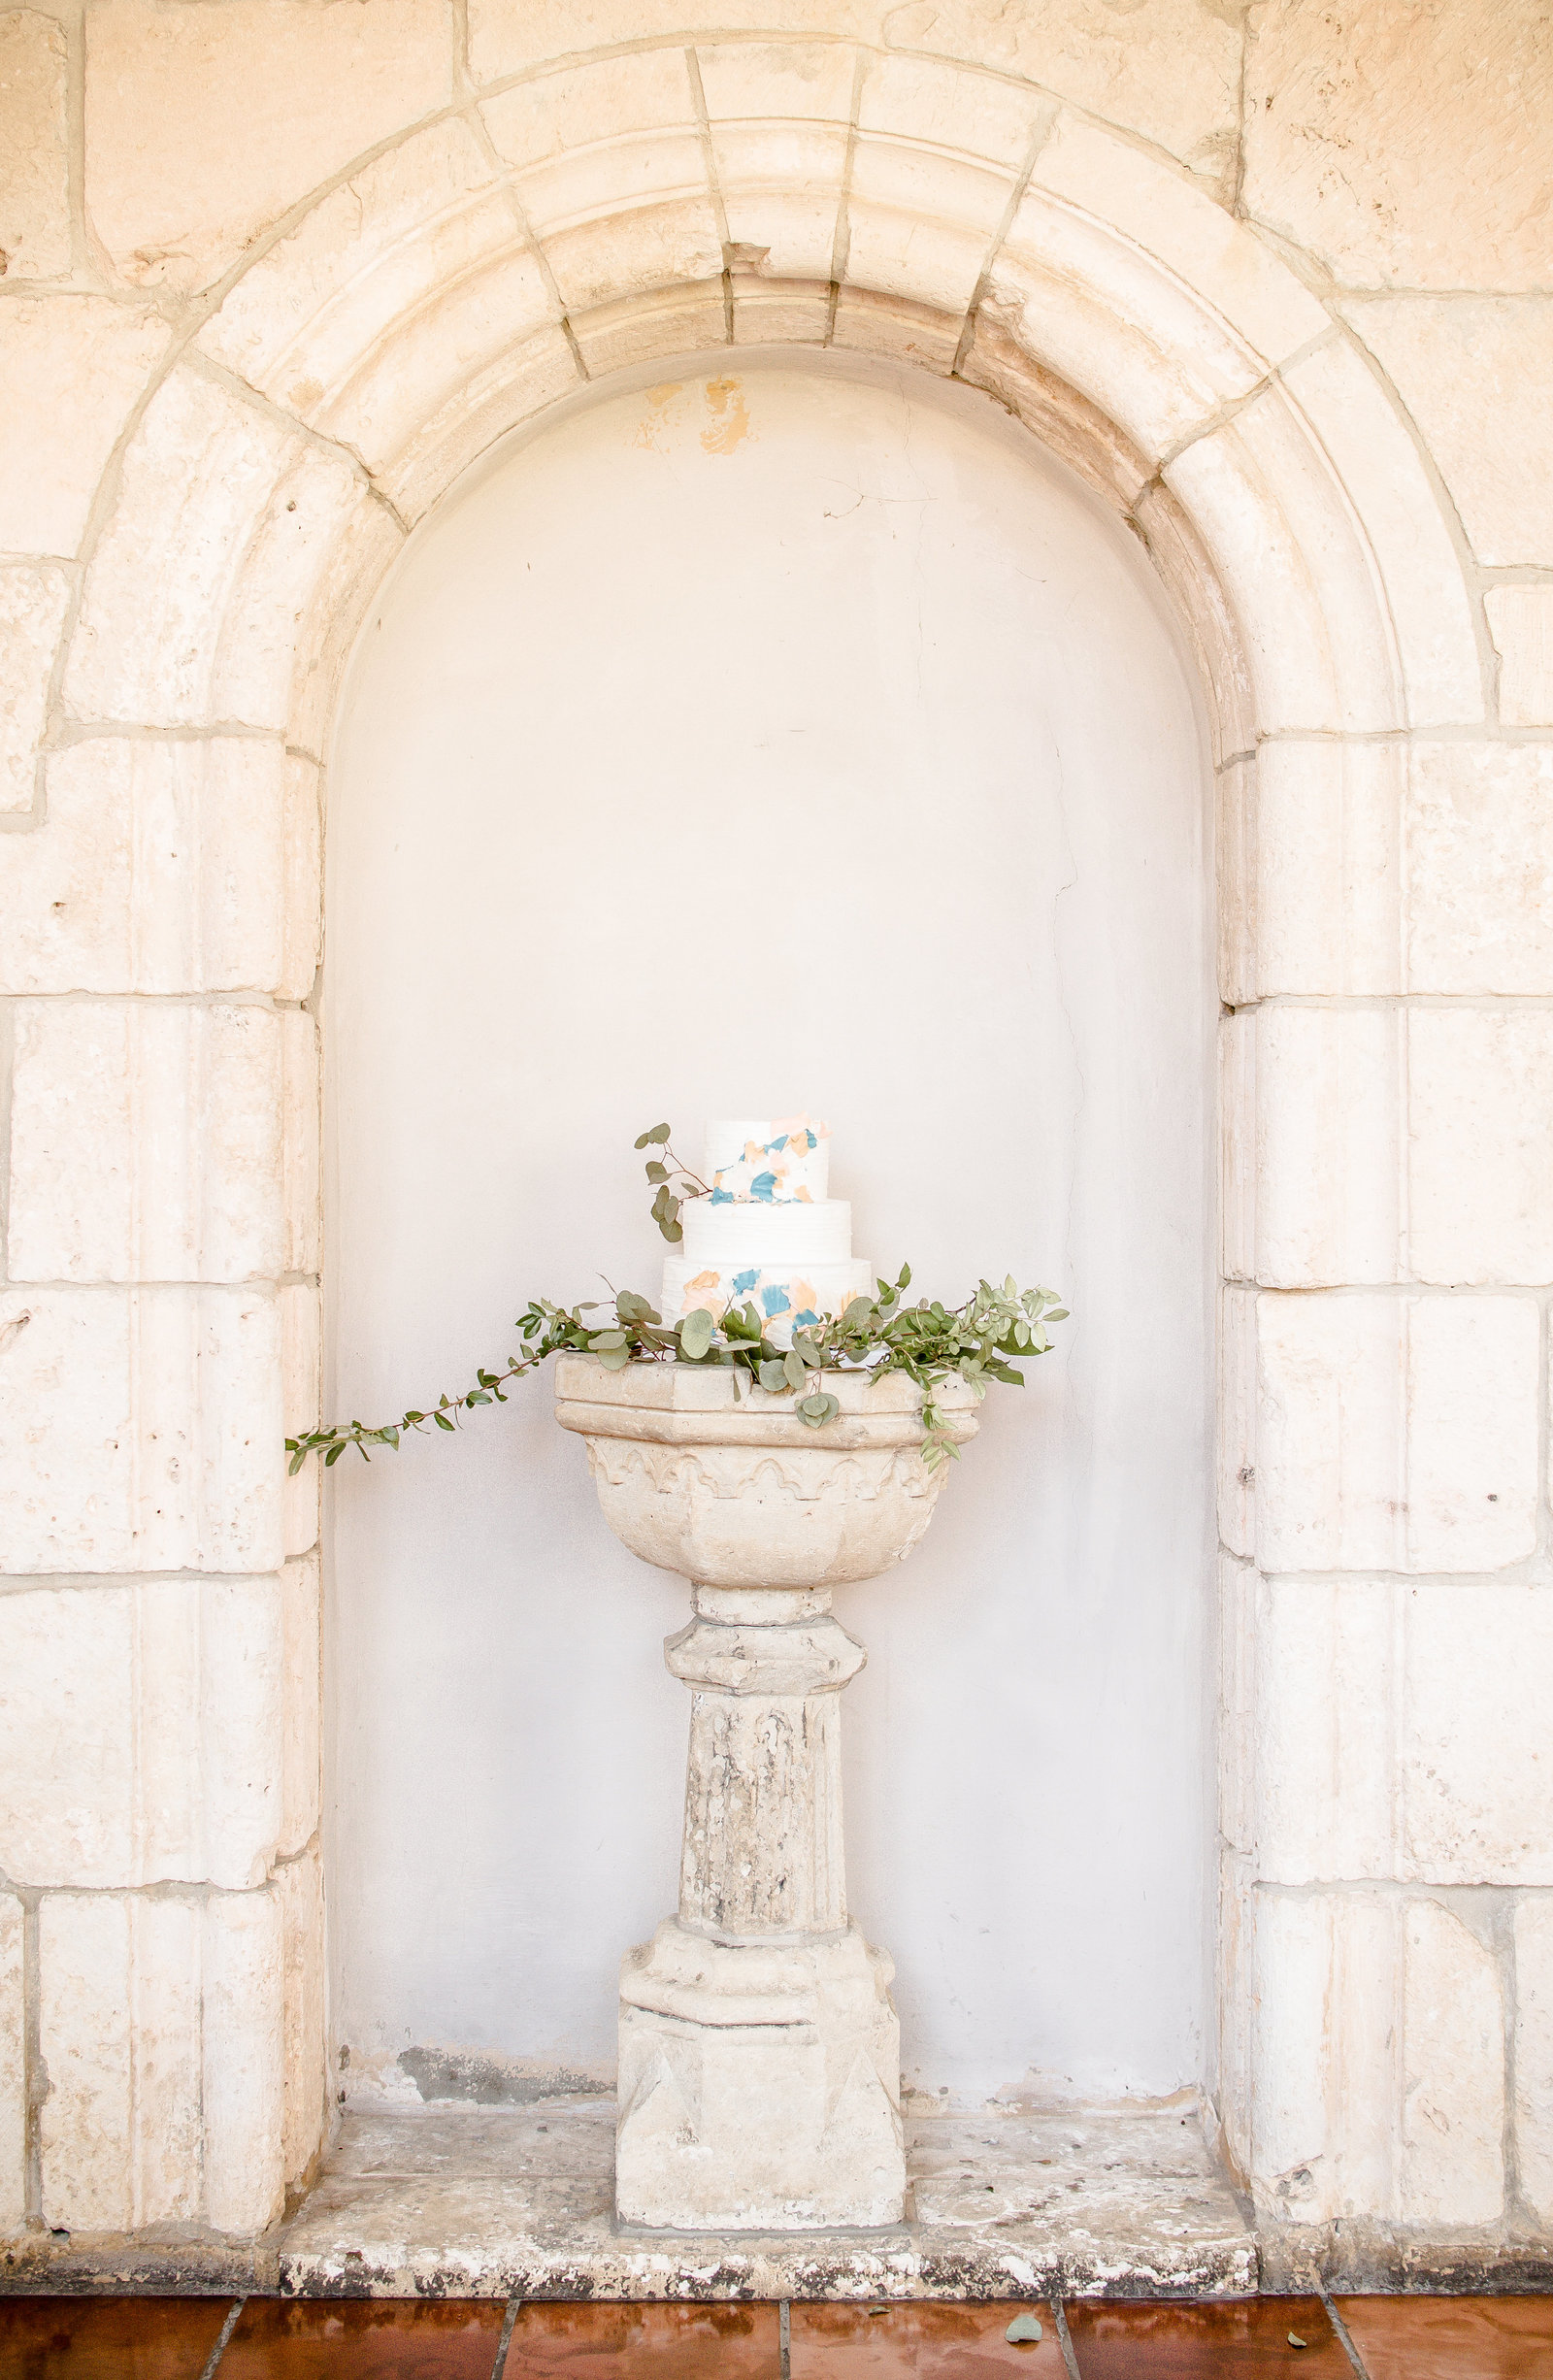 SpanishMonasteryMiamiWeddingMSuarezPhotography-2367